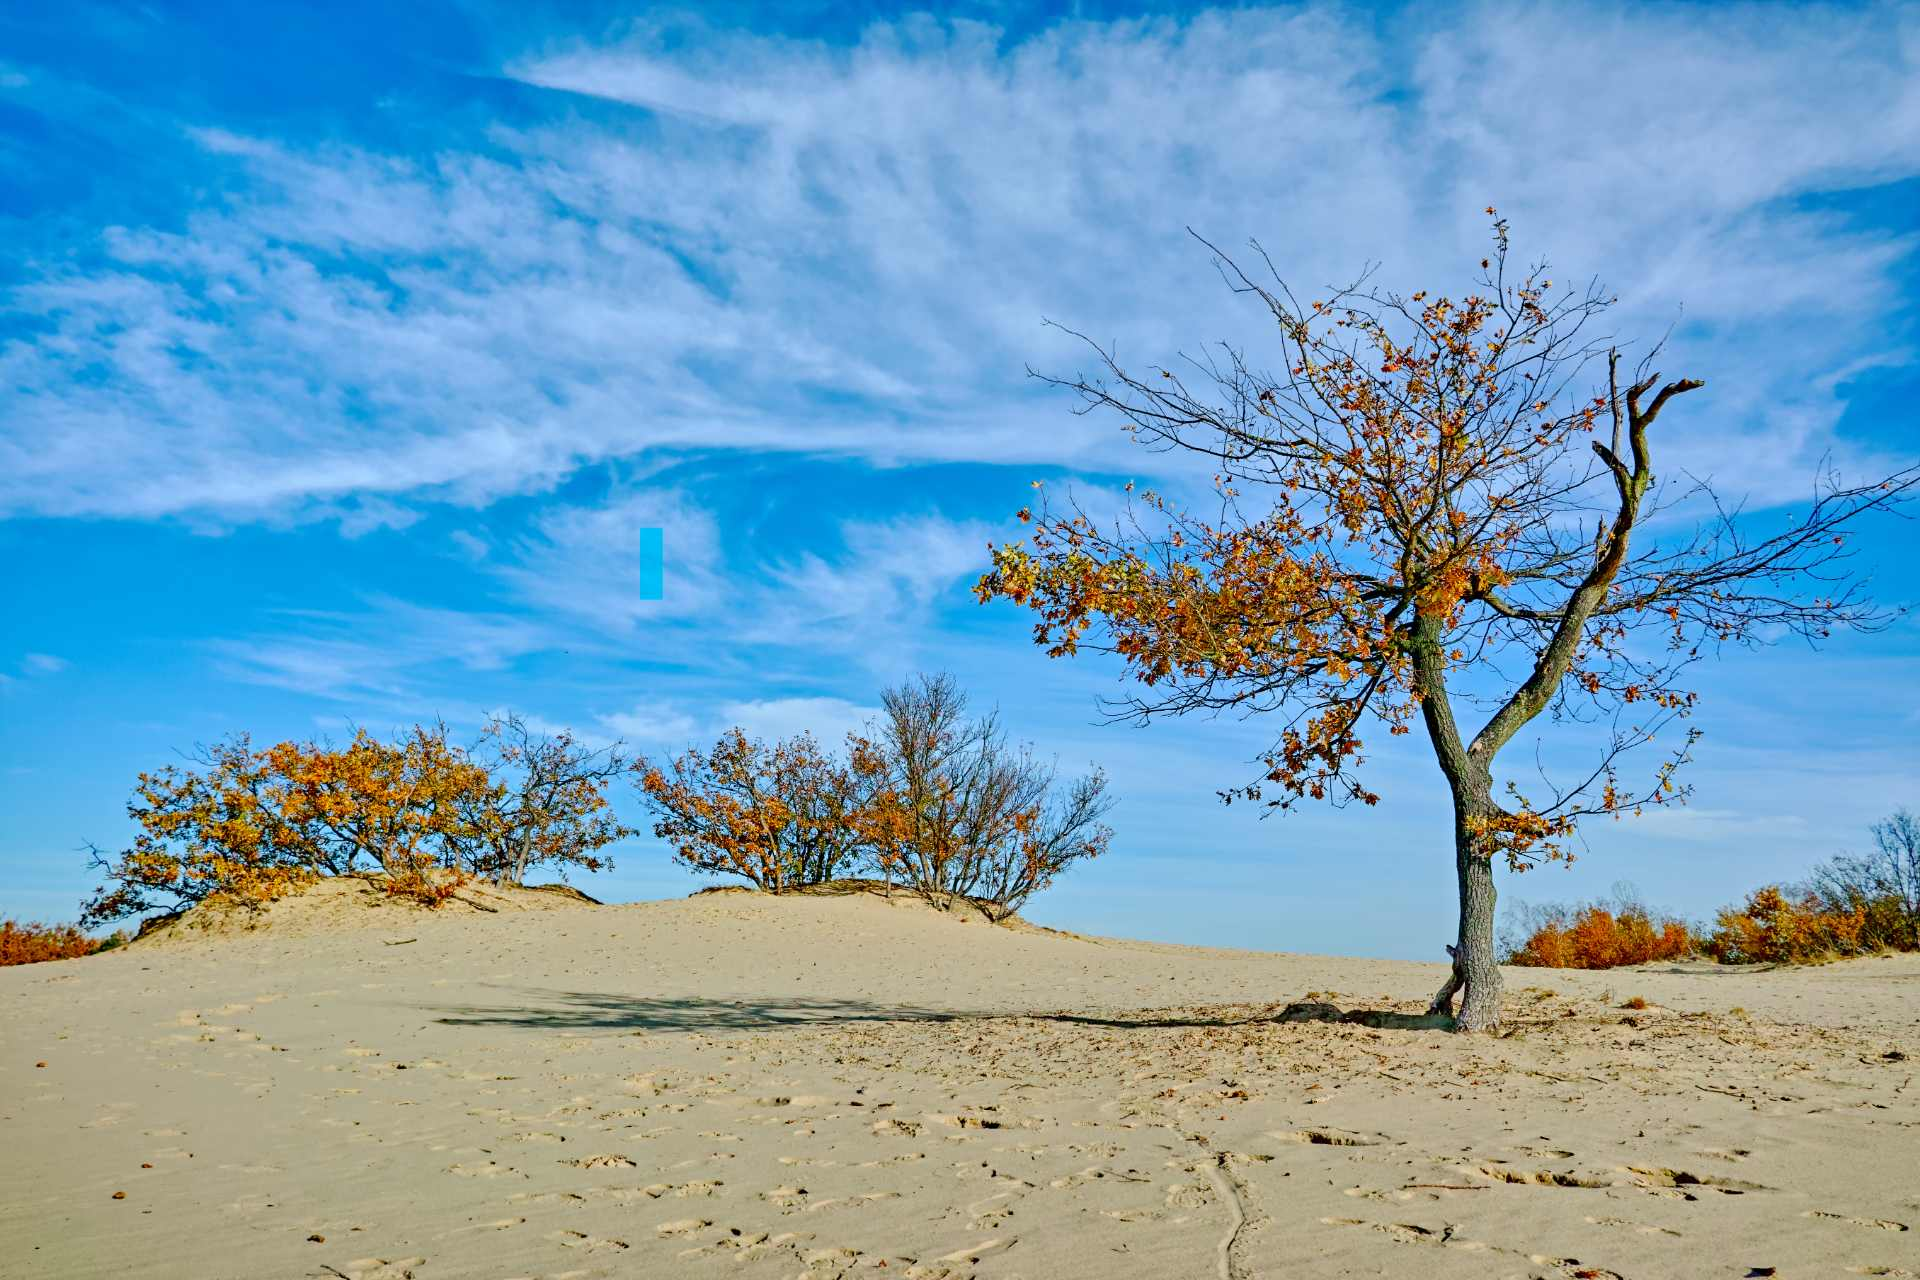 lone-tree-standing-in-sandy-desert-in-front-of-blue-skies-brabant-sahara-nature-in-the-netherlands-beautiful-places-in-the-netherlands